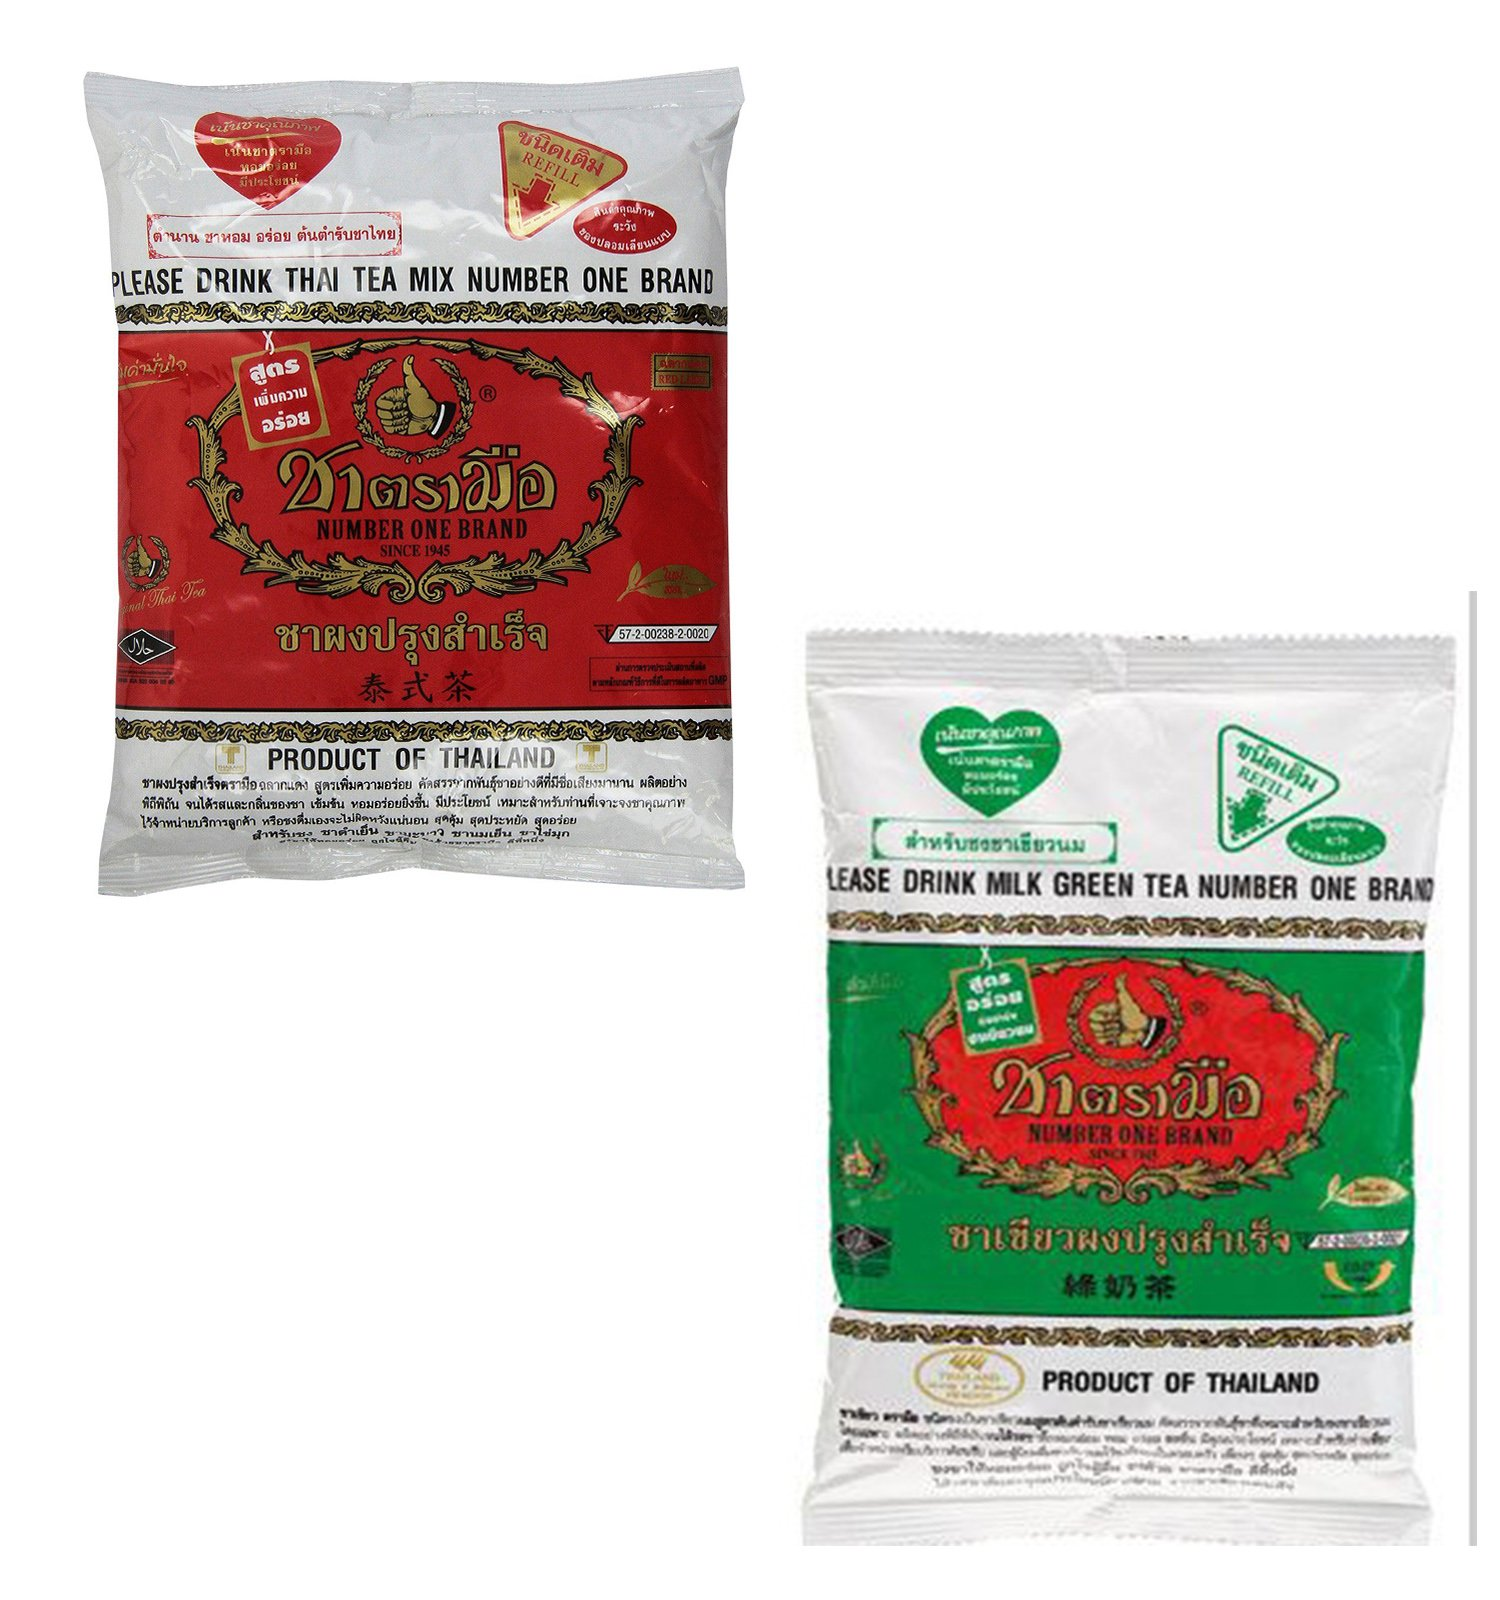 10 Bag/lots - The Original Thai Iced Tea Mix ~ Number One Brand Imported From Thailand! 400g Bag Great for Restaurants That Want to Serve Authentic and High Quality Thai Iced Teas. Sent with EMS by by pround kitchen